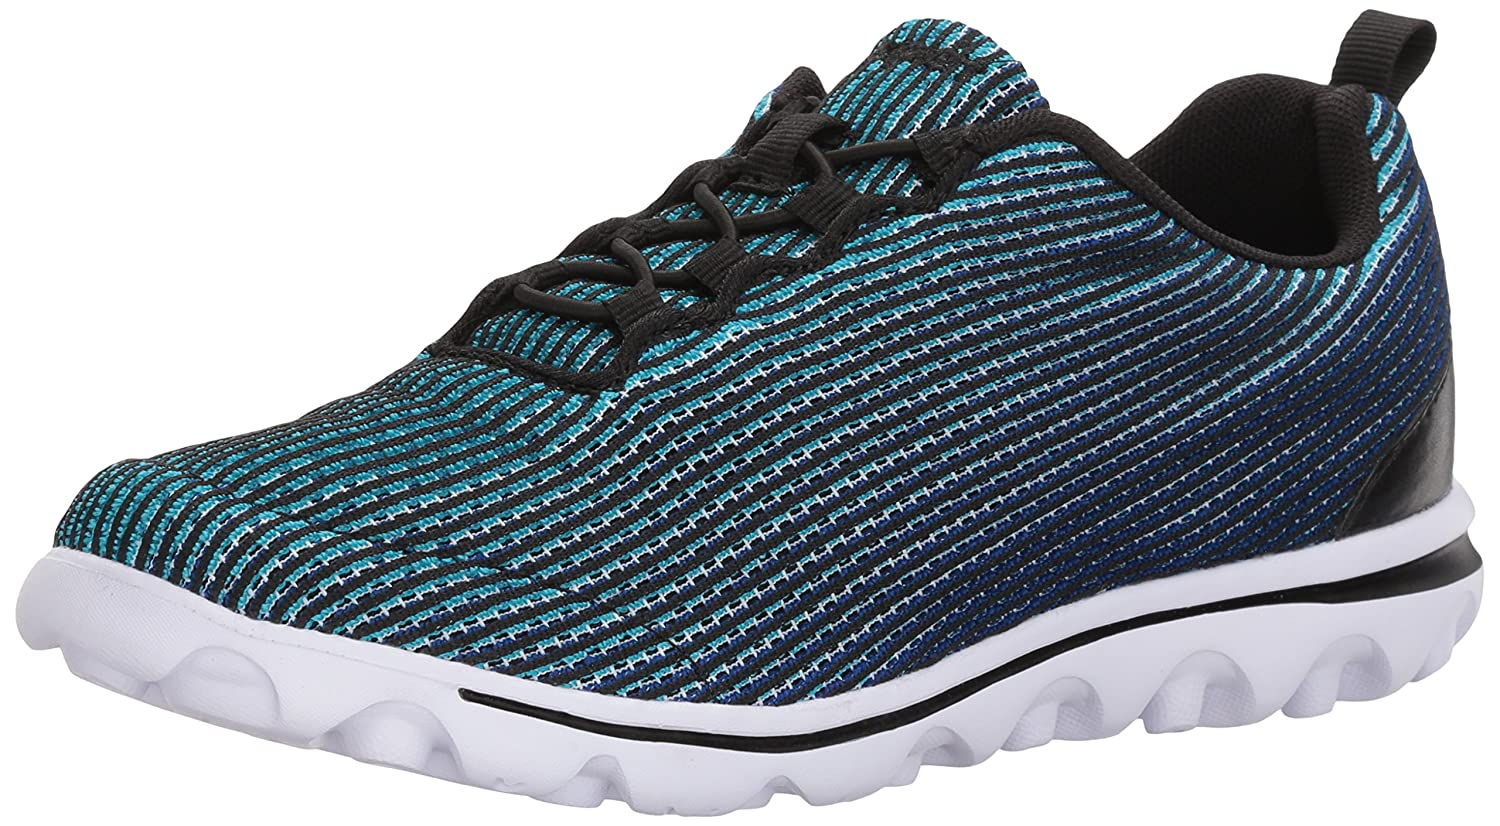 Propét Women's TravelActiv Xpress US|Black/Blue Sneaker B071JFS5YZ 7 W US|Black/Blue Xpress 7567f3